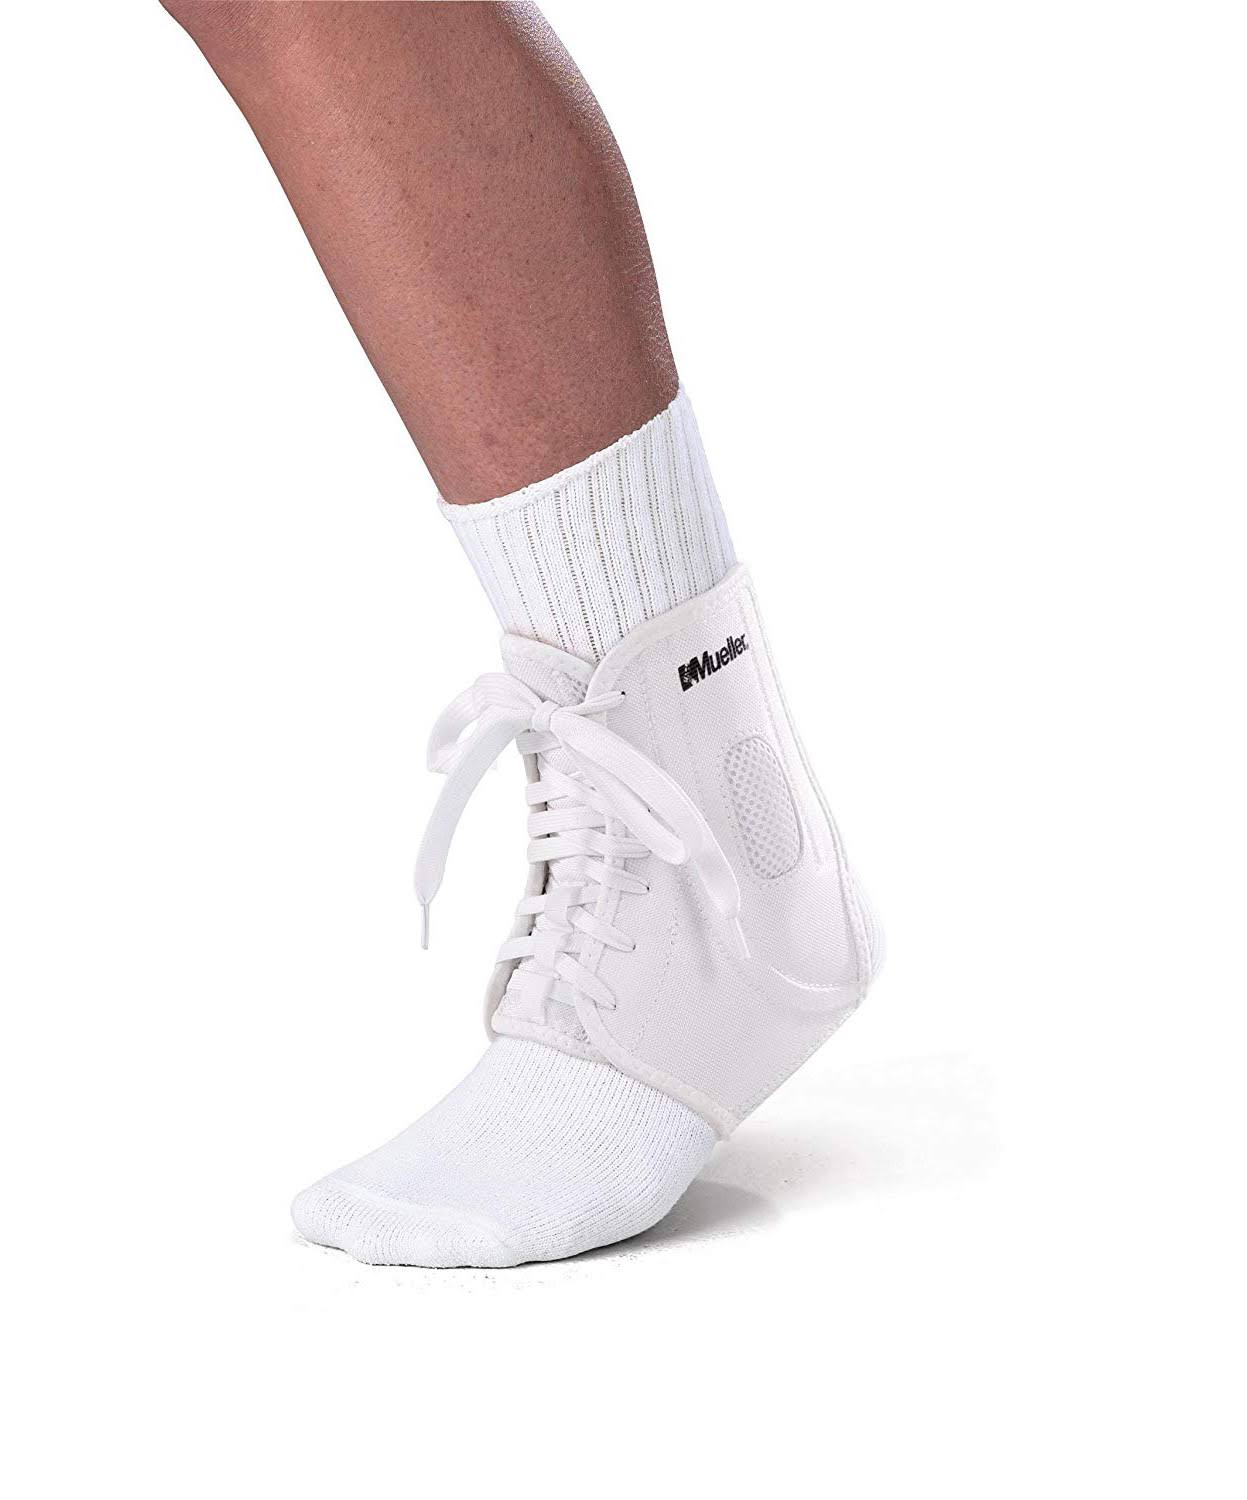 Mueller ATF2 Ankle Brace - White, Large